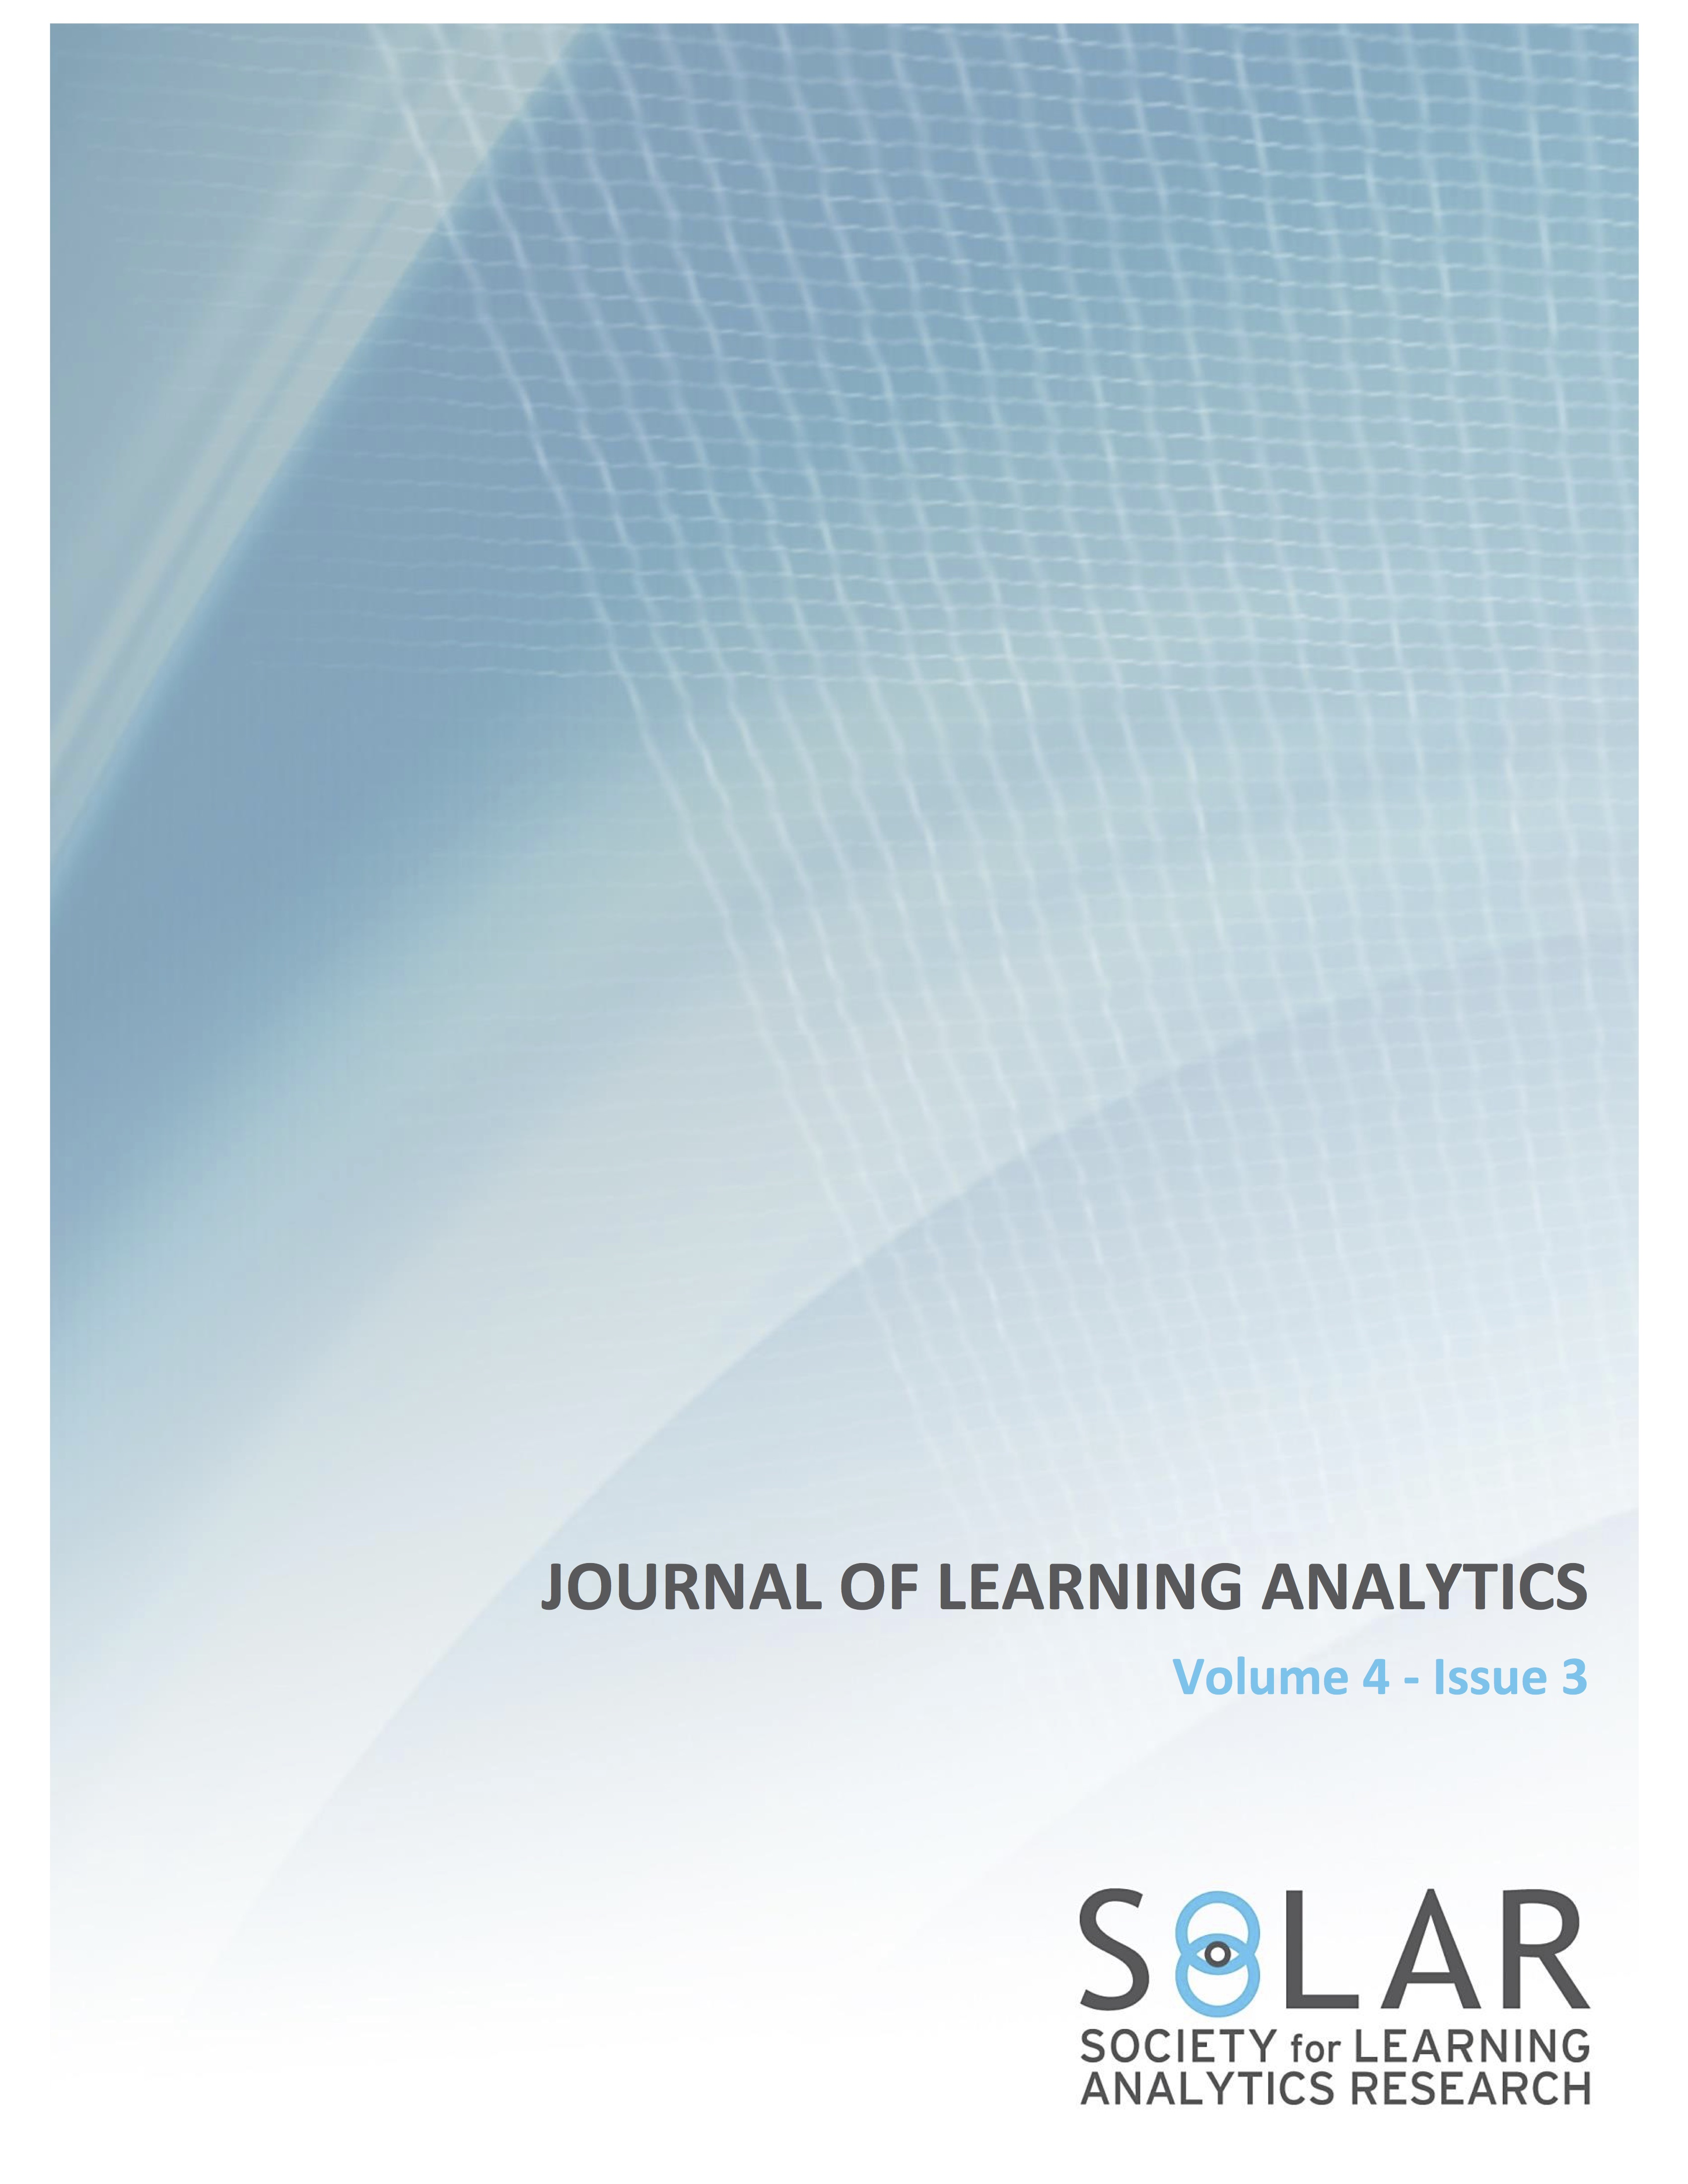 View Vol. 4 No. 3 (2017): It's About Time: Temporal Analyses of Learning Data (Part 1)